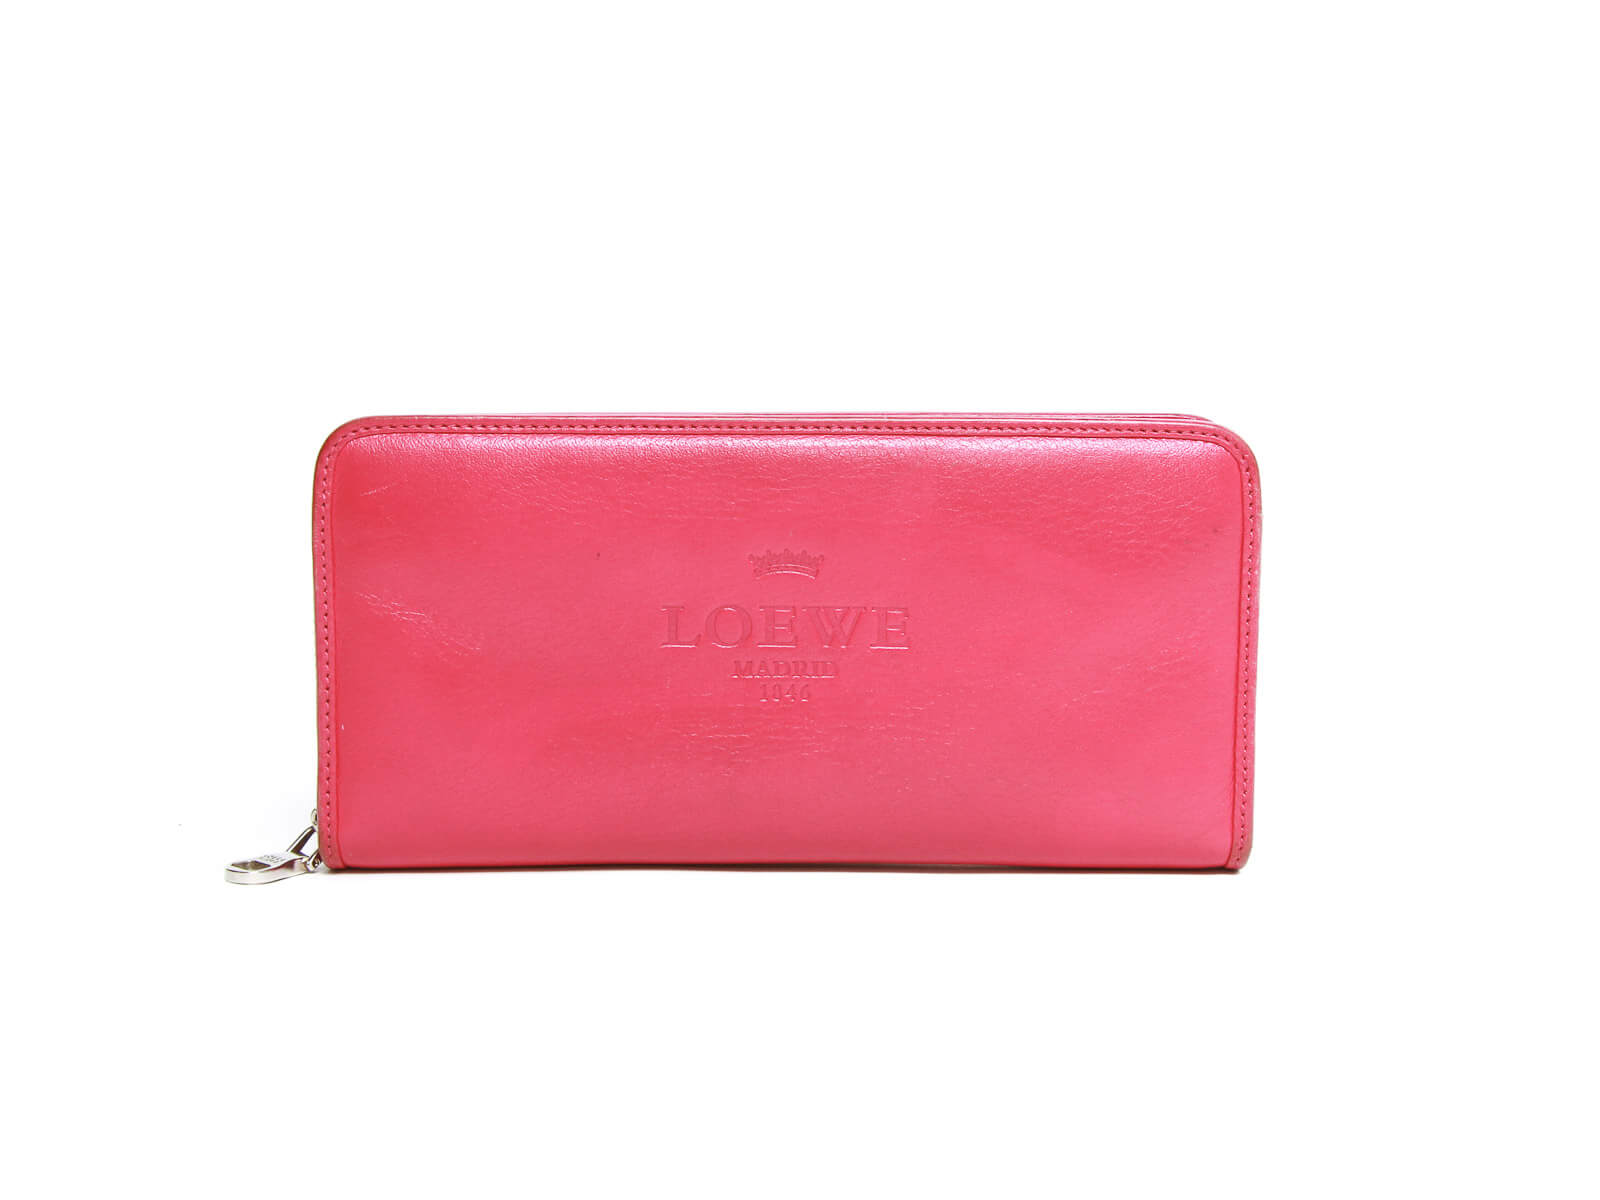 Authentic Loewe Billetero Magenta zip around wallet